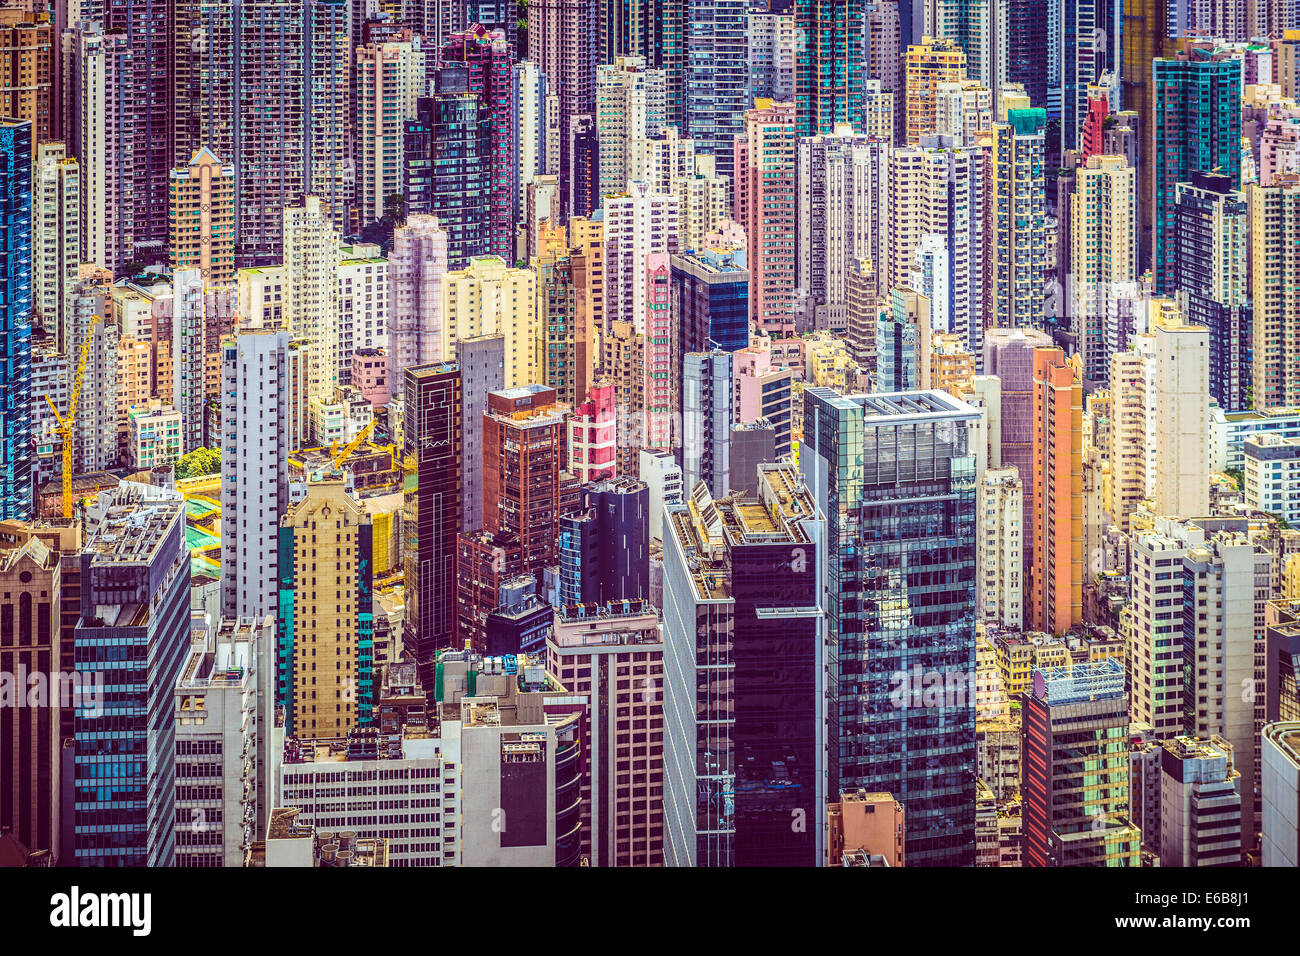 Hong Kong, Chine bâtiments financiers paysage urbain. Photo Stock